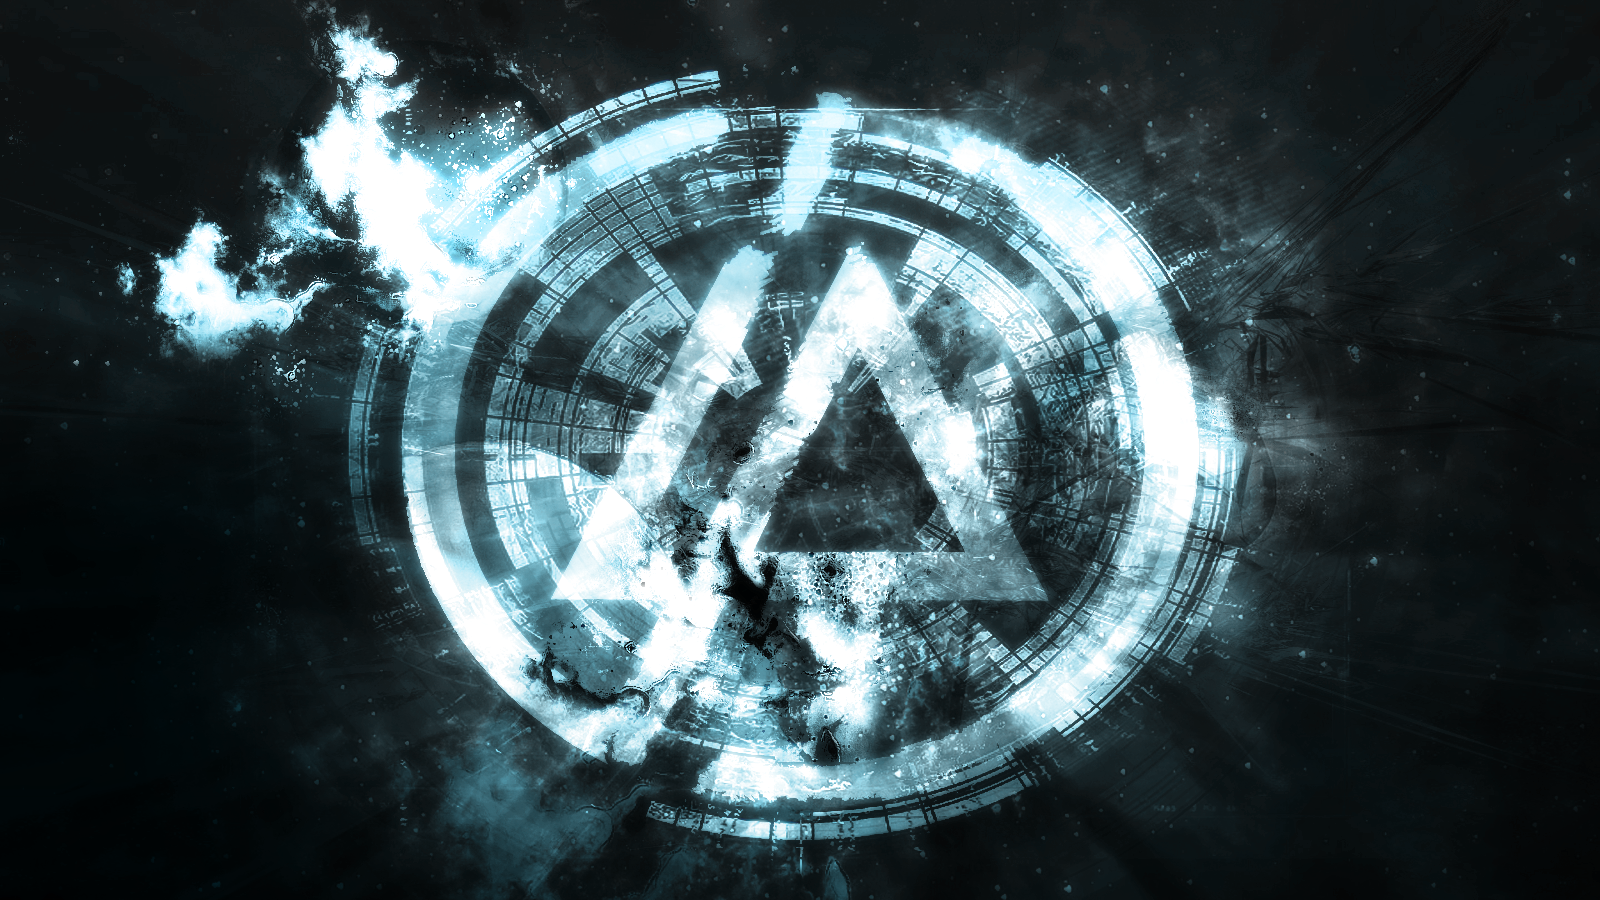 Linkin park iphone background white world by shinodasdiscover on linkin park iphone background white world by shinodasdiscover on biocorpaavc